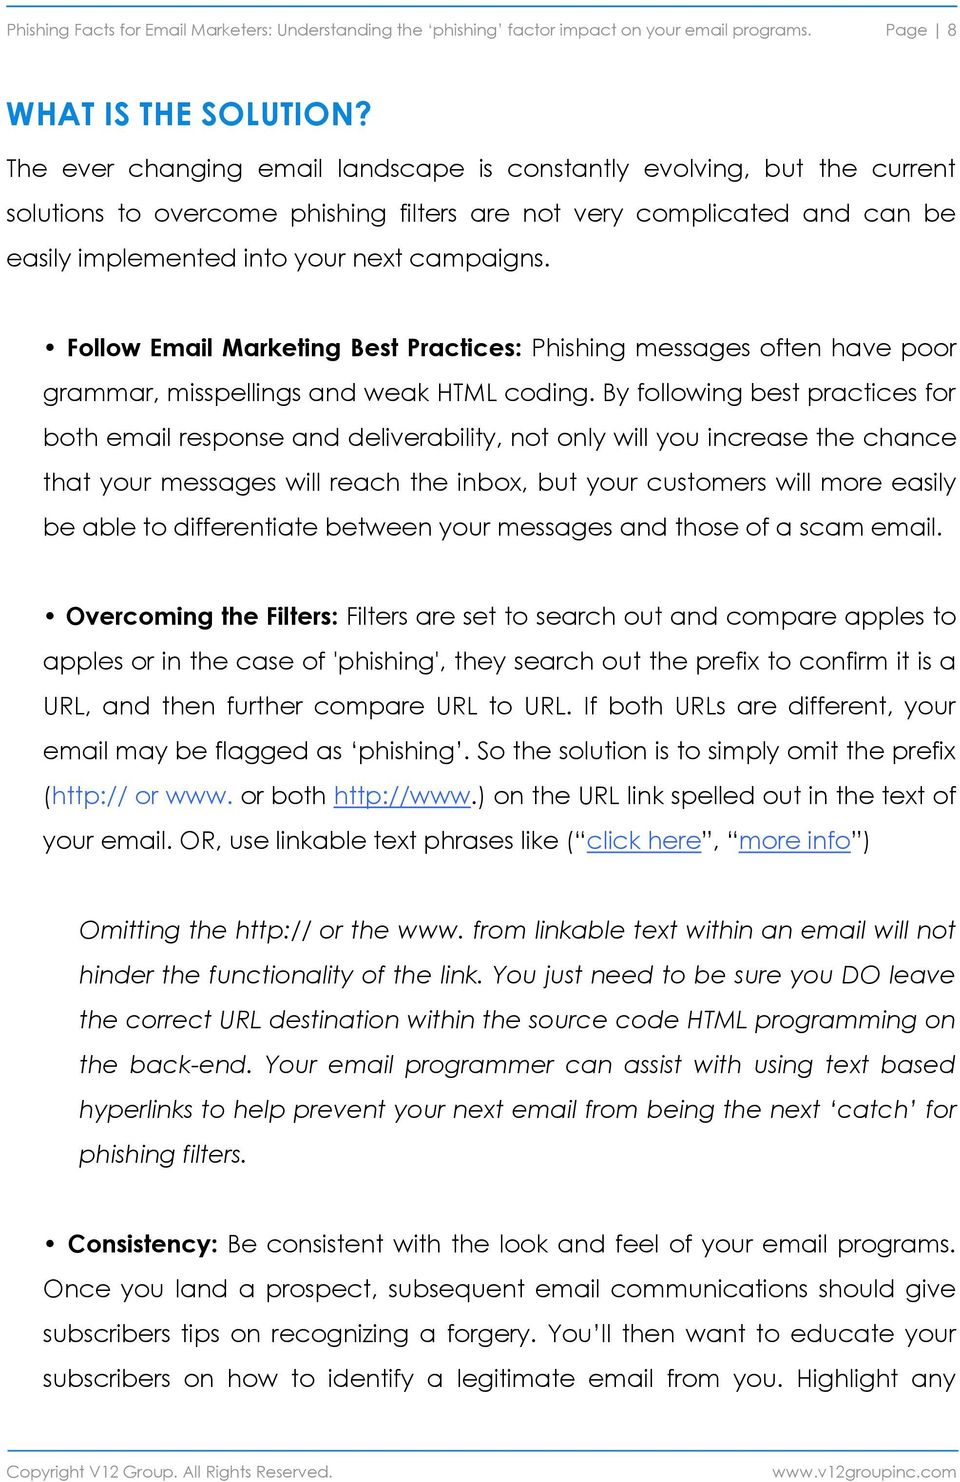 Follow Email Marketing Best Practices: Phishing messages often have poor grammar, misspellings and weak HTML coding.